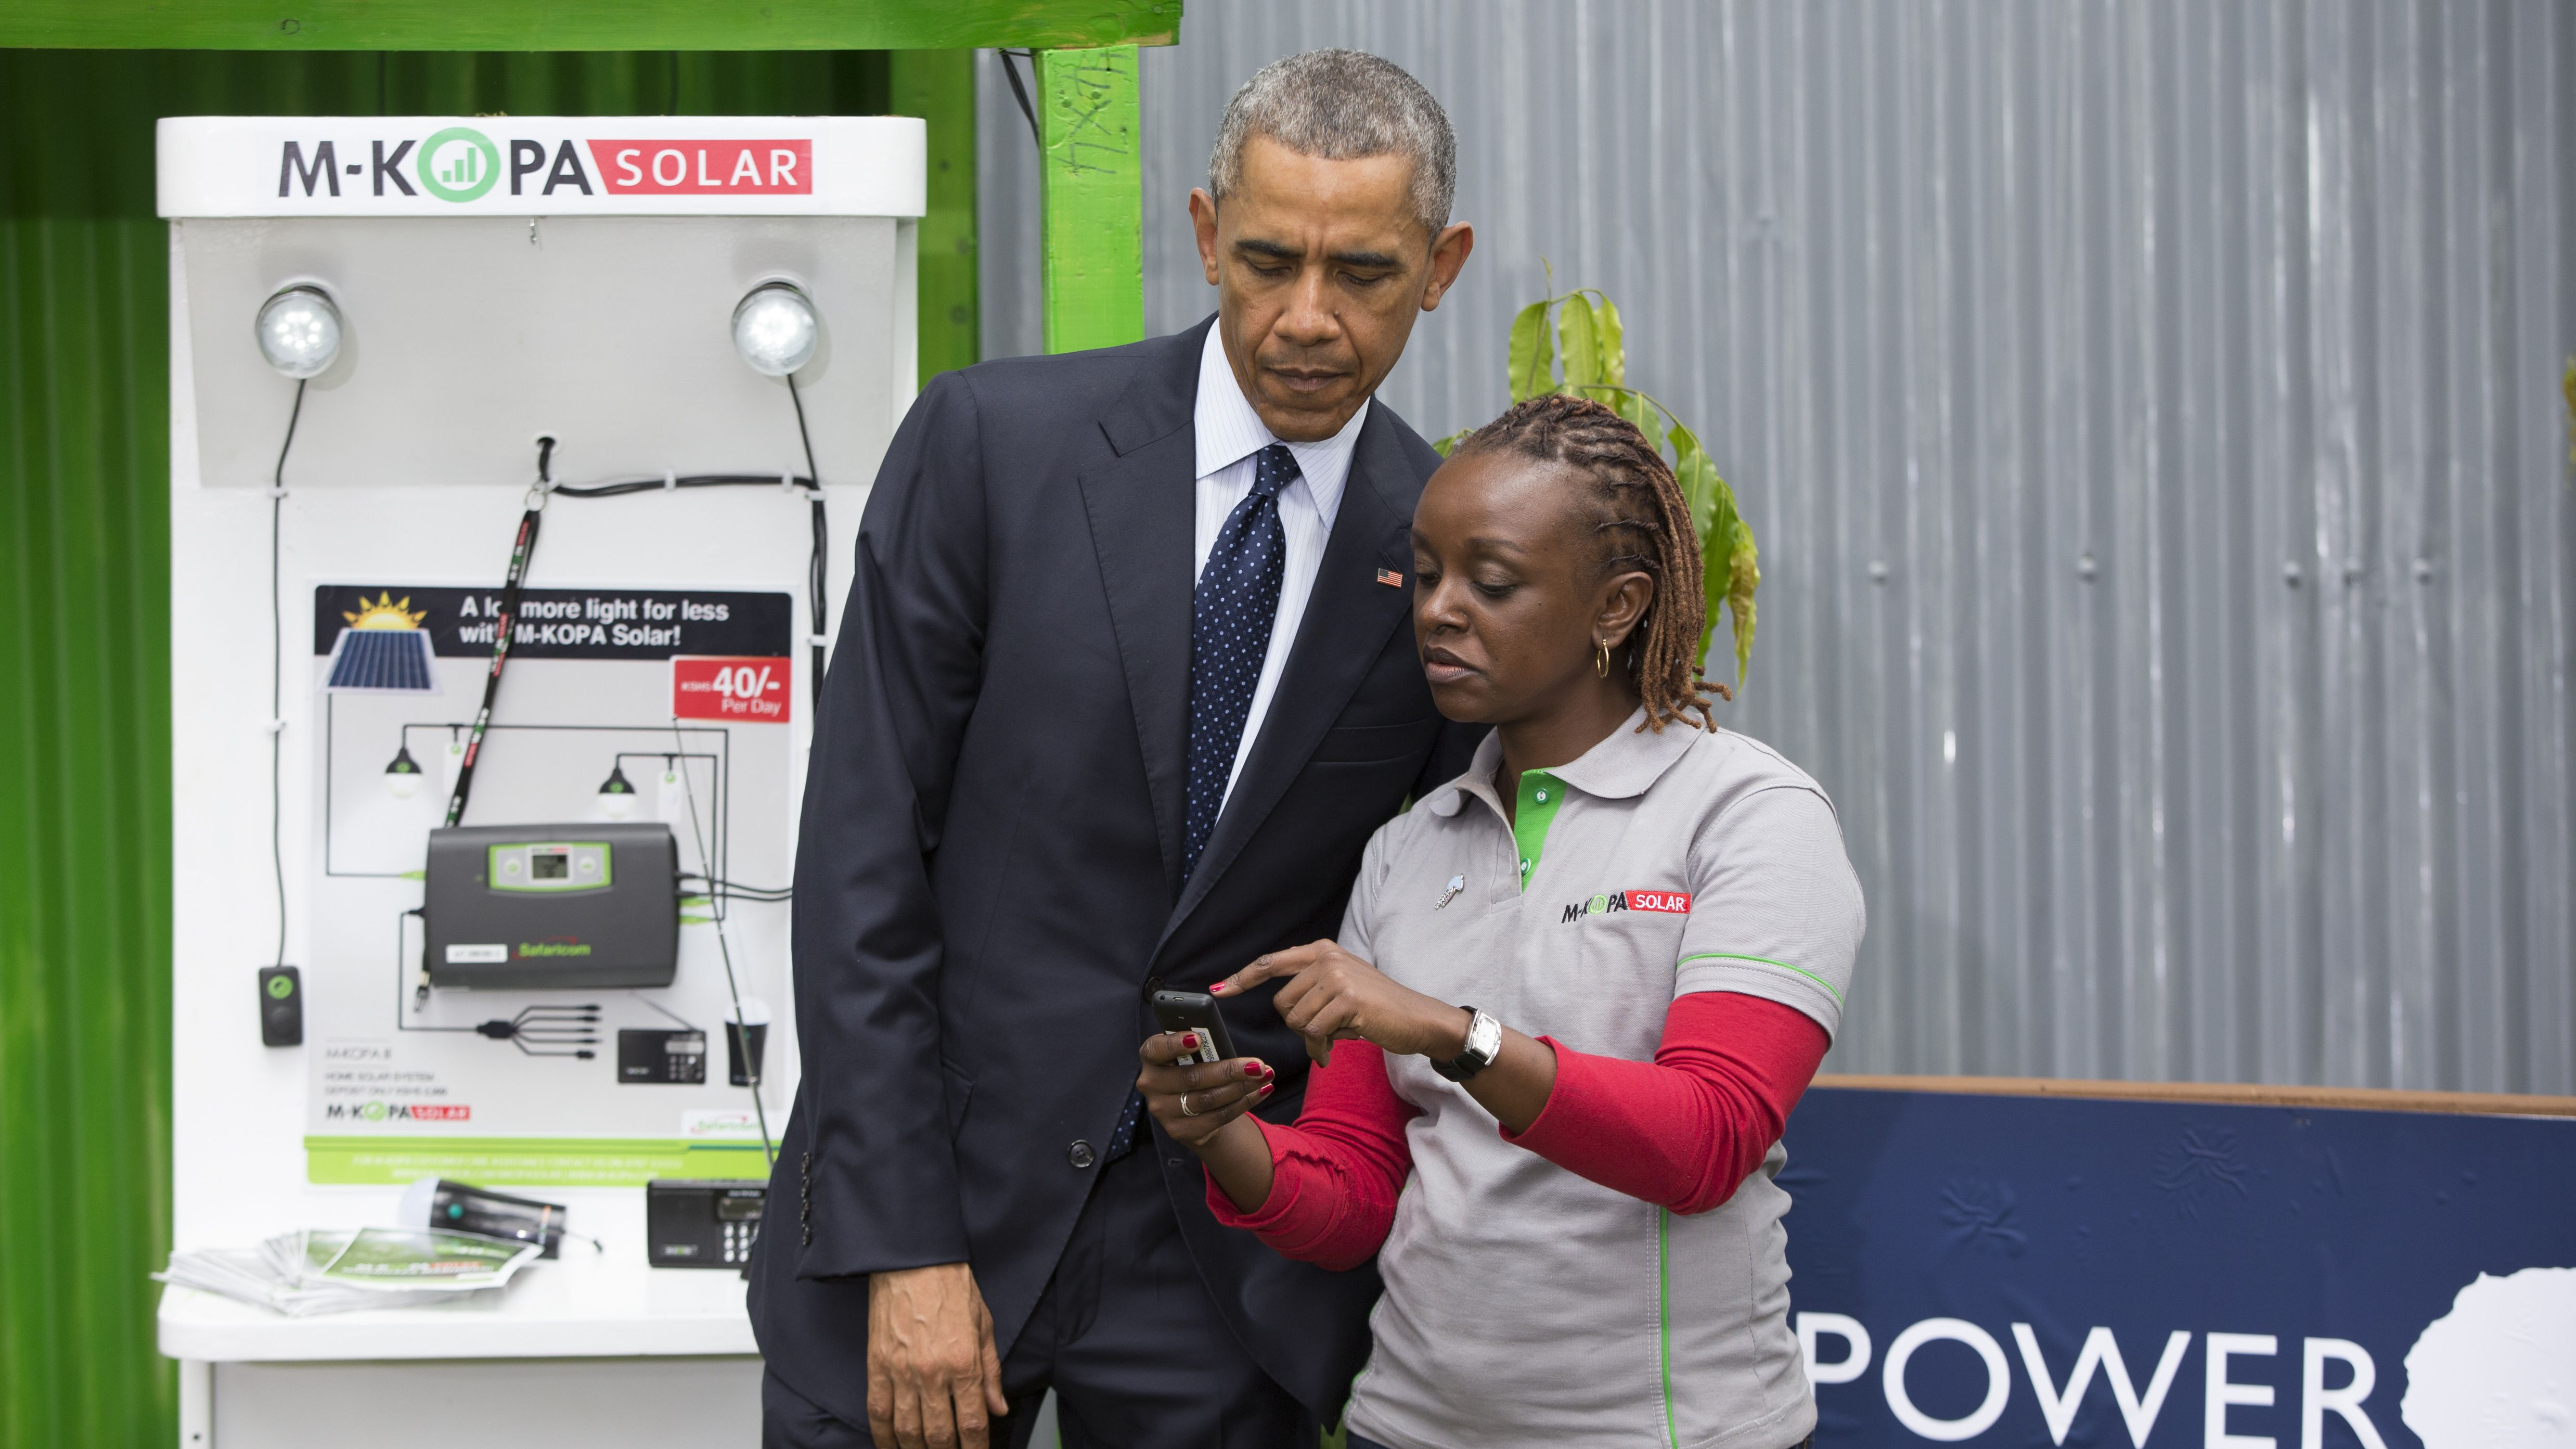 Barack Obama looks at an M-KOPA mobile payment platform and solar exhibit in Nairobi.